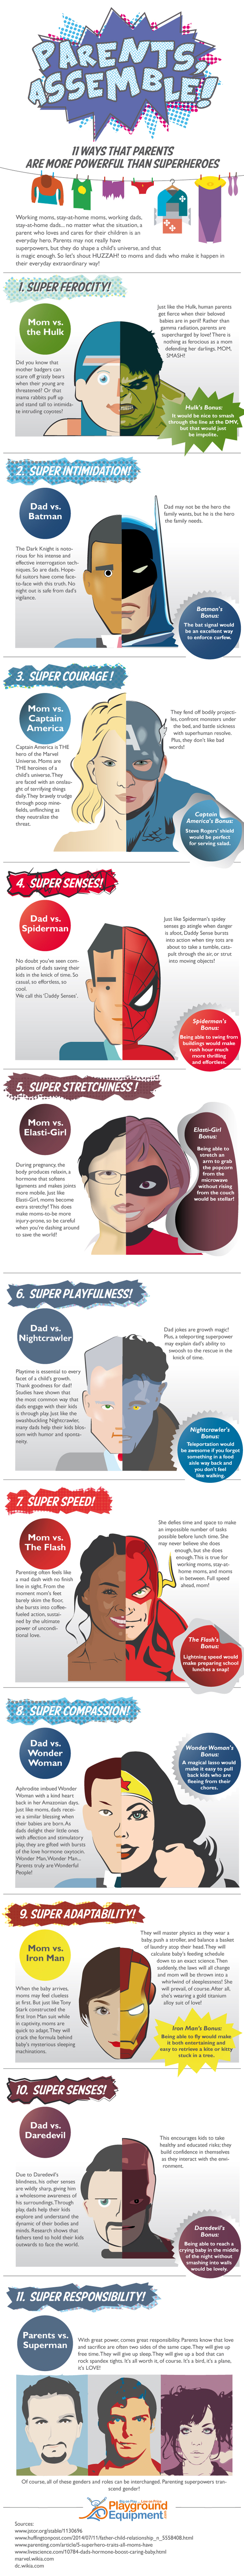 Parents, Assemble! - Playgroundequipment.com - Infographic